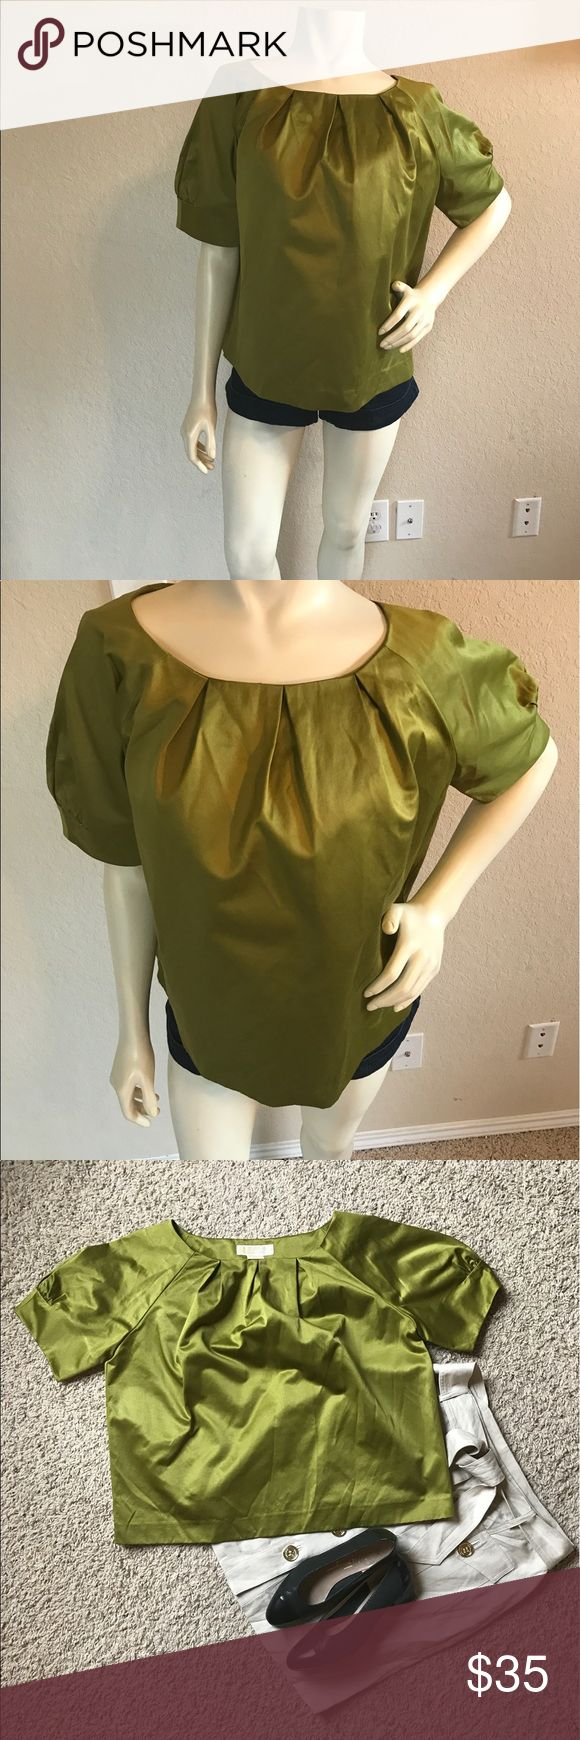 "Michael Kors Green Short Sleeve Top Size M Michael Kors Green Short Sleeve too, Size Medium.   This top has a thick satin fill but is cotton and Polyester blend. Top looks classy and perfect for work.   MEASUREMENTS:  Bust: 23"" Length: 22"" MICHAEL Michael Kors Tops Blouses"